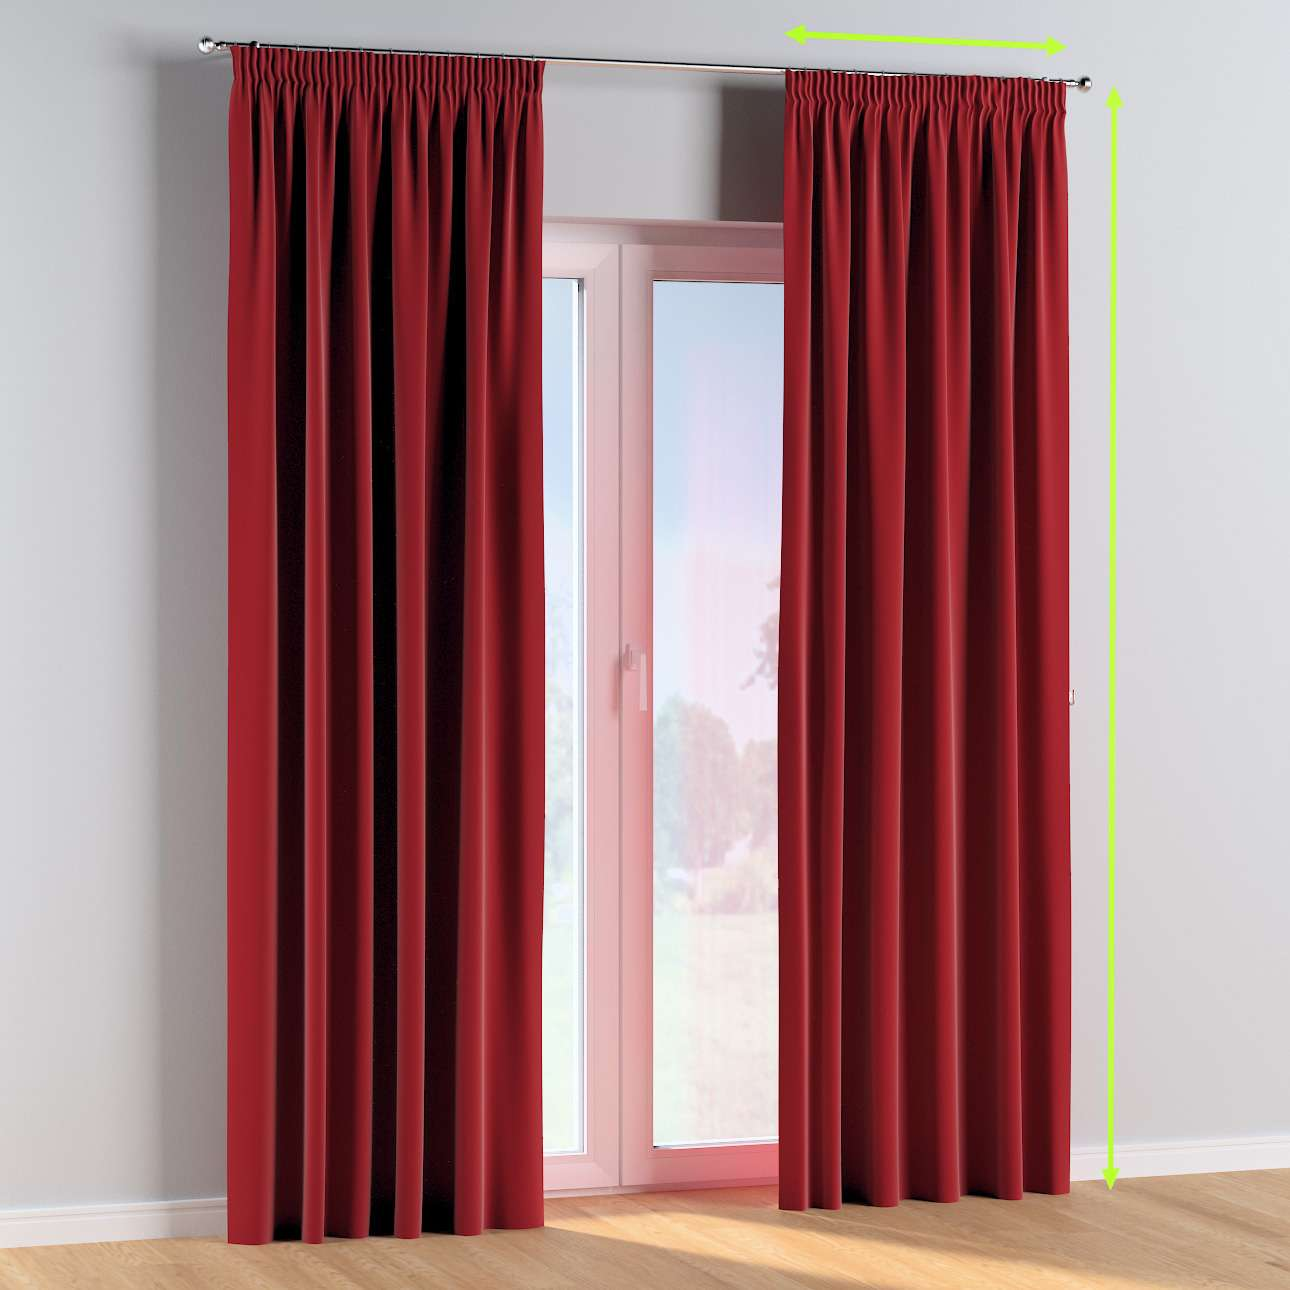 Pencil pleat curtains in collection Posh Velvet, fabric: 704-15